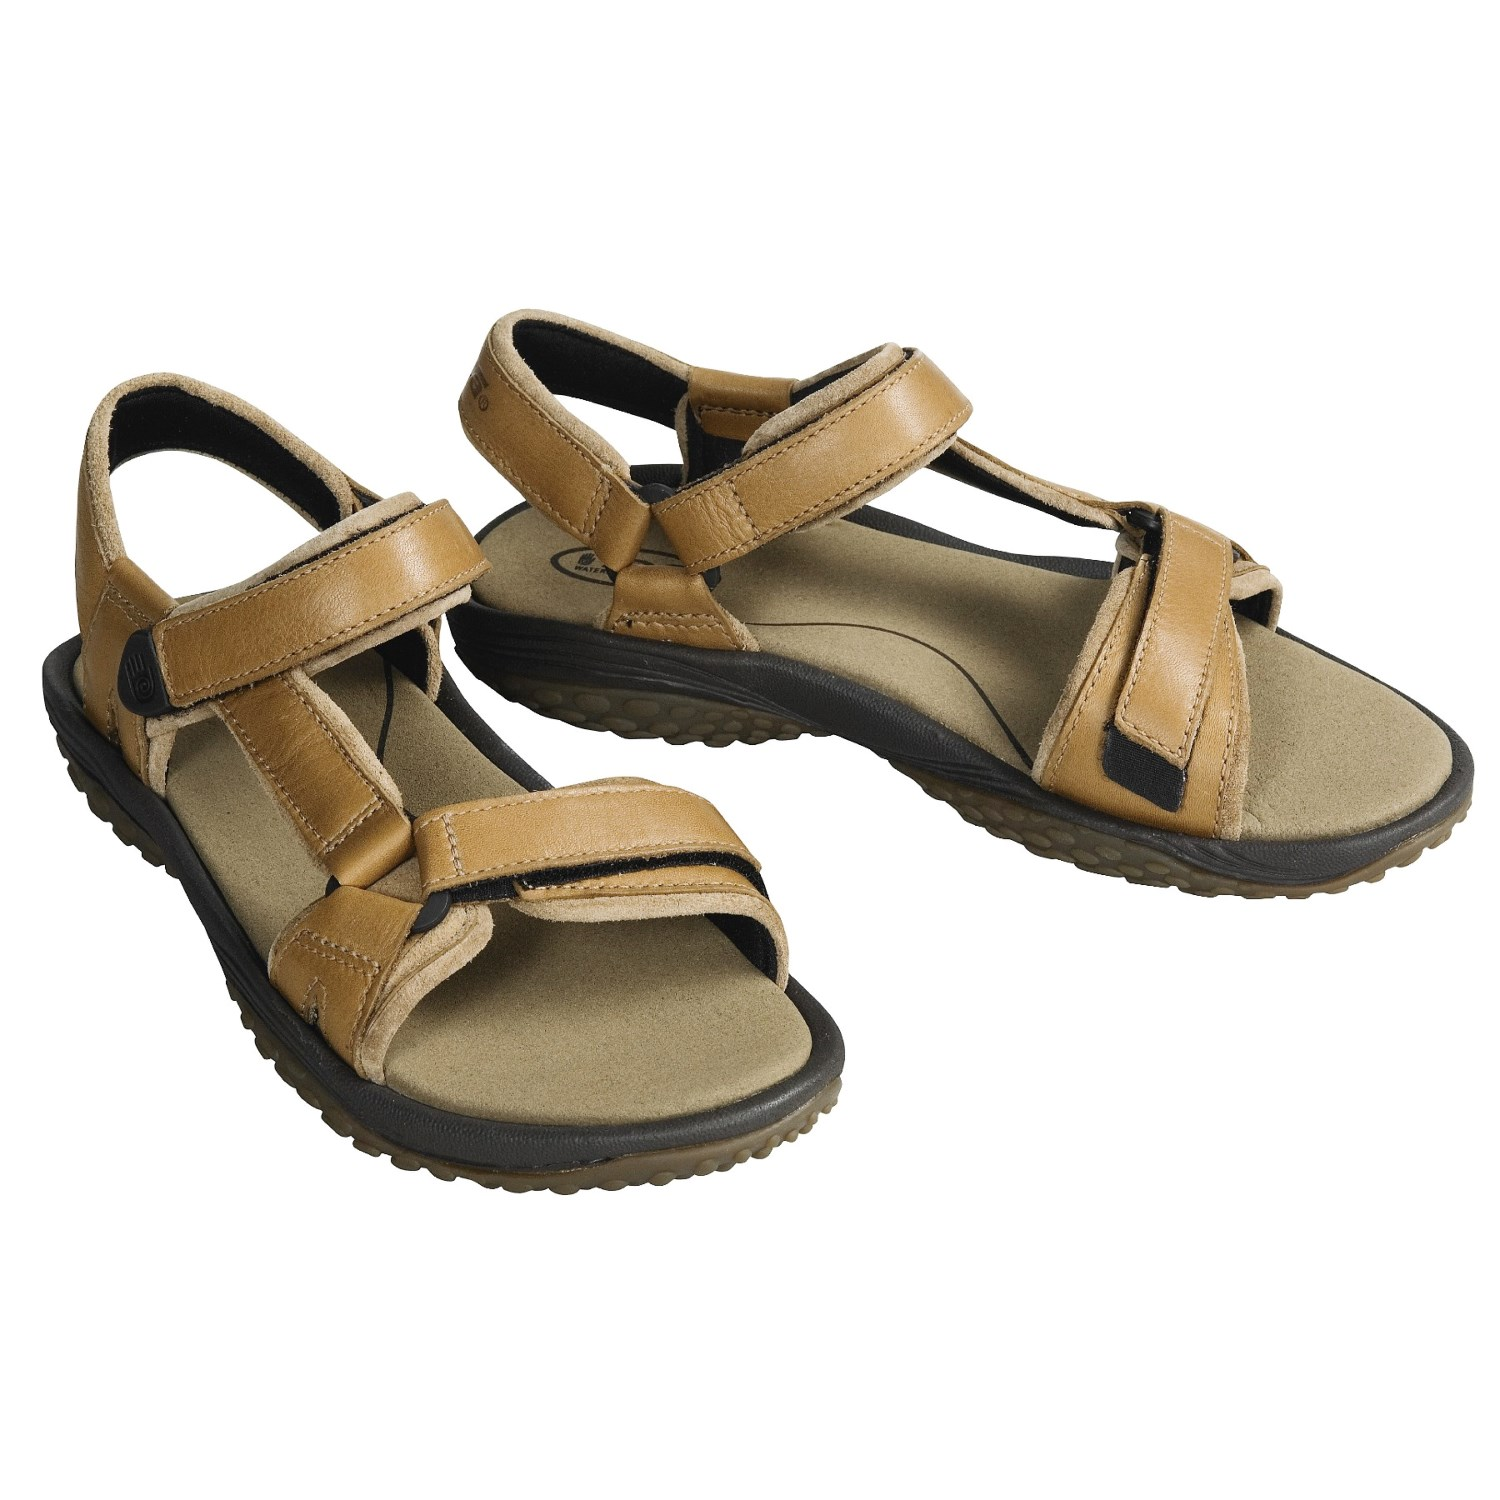 Teva Pretty Rugged Leather 2 Sandals For Women 95370